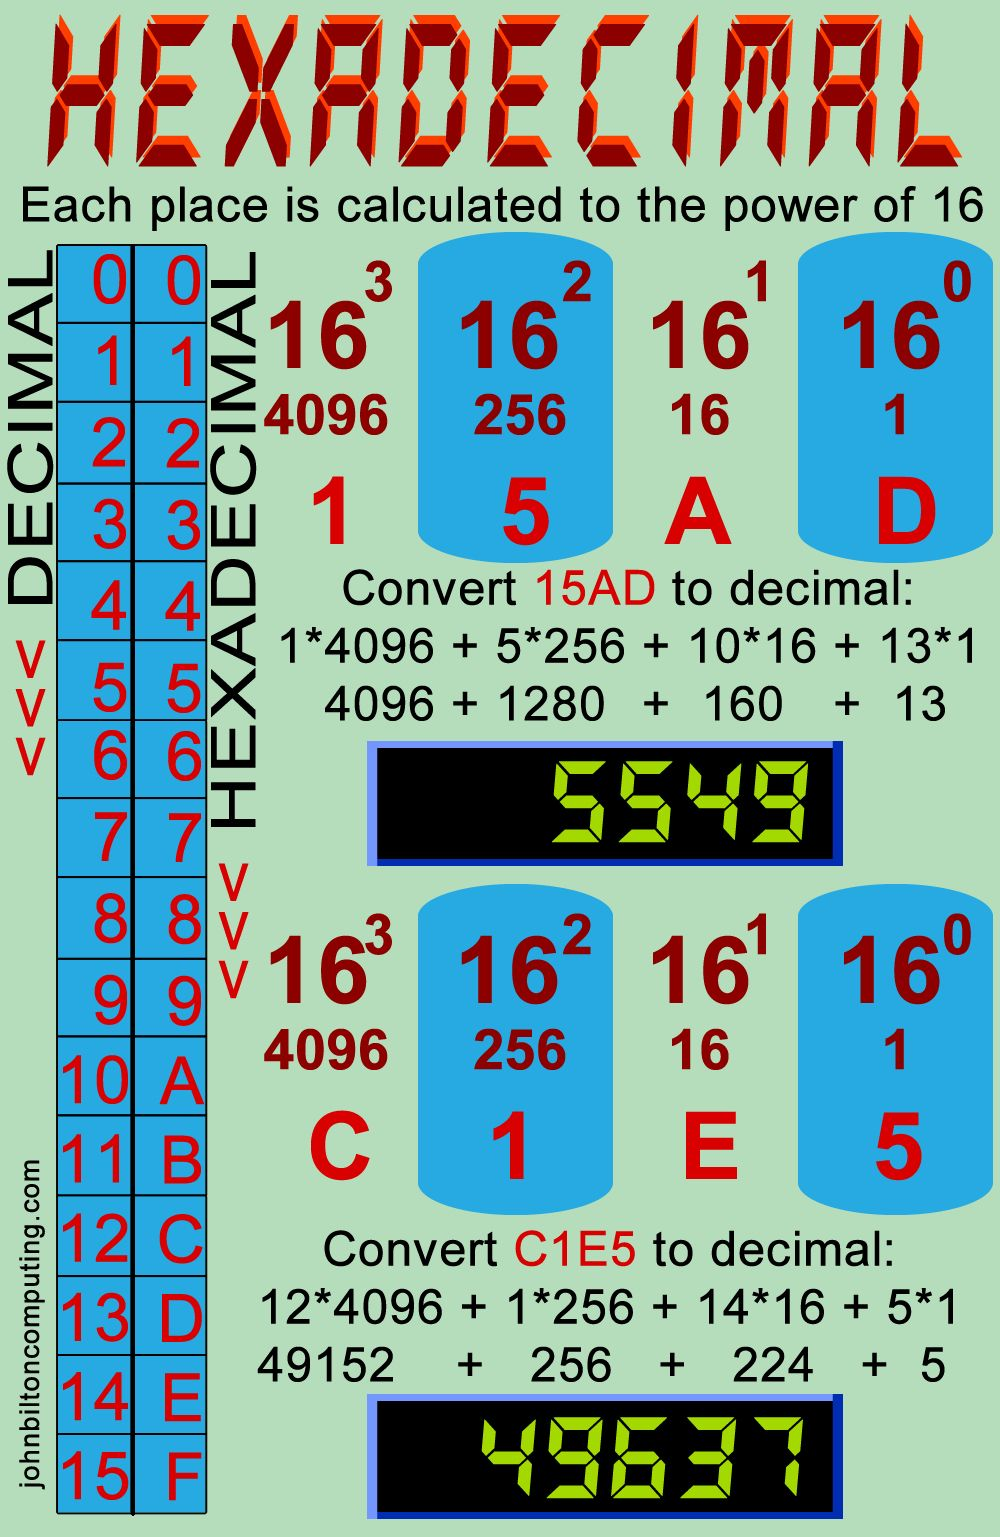 Hexadecimal Explained. How to convert hexadecimal to decimal.